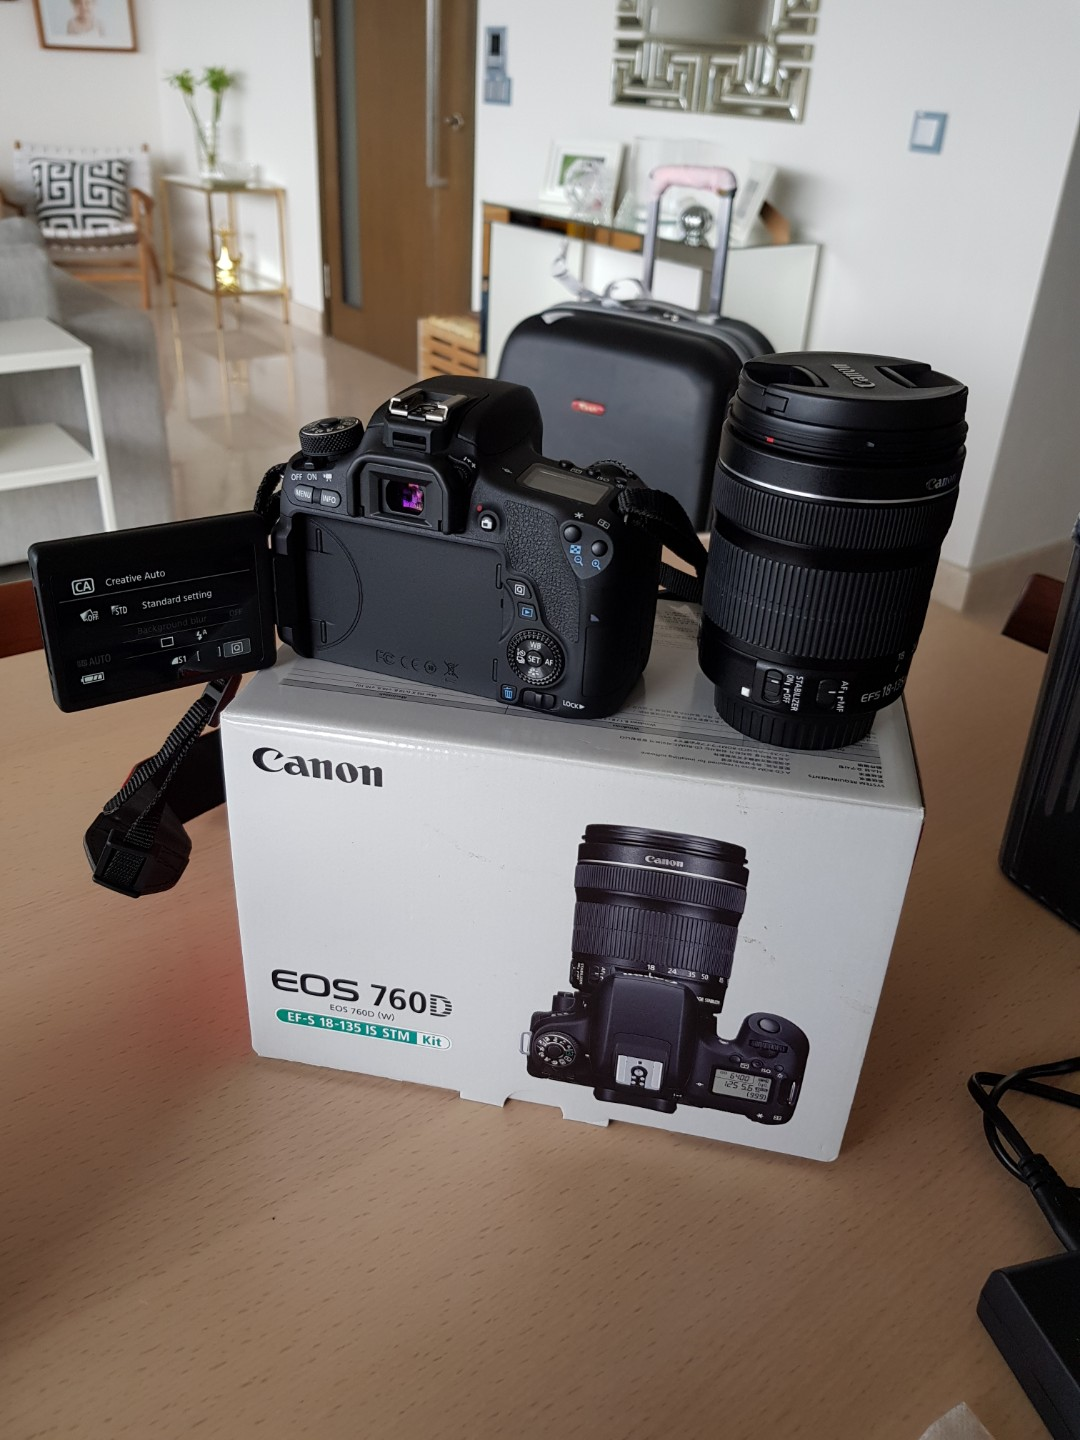 Canon Eos 760d 242 Mega Pixel Photography Cameras Dslr On Kit Ef S 18 135mm F 35 56 Is Stm Wifi Carousell